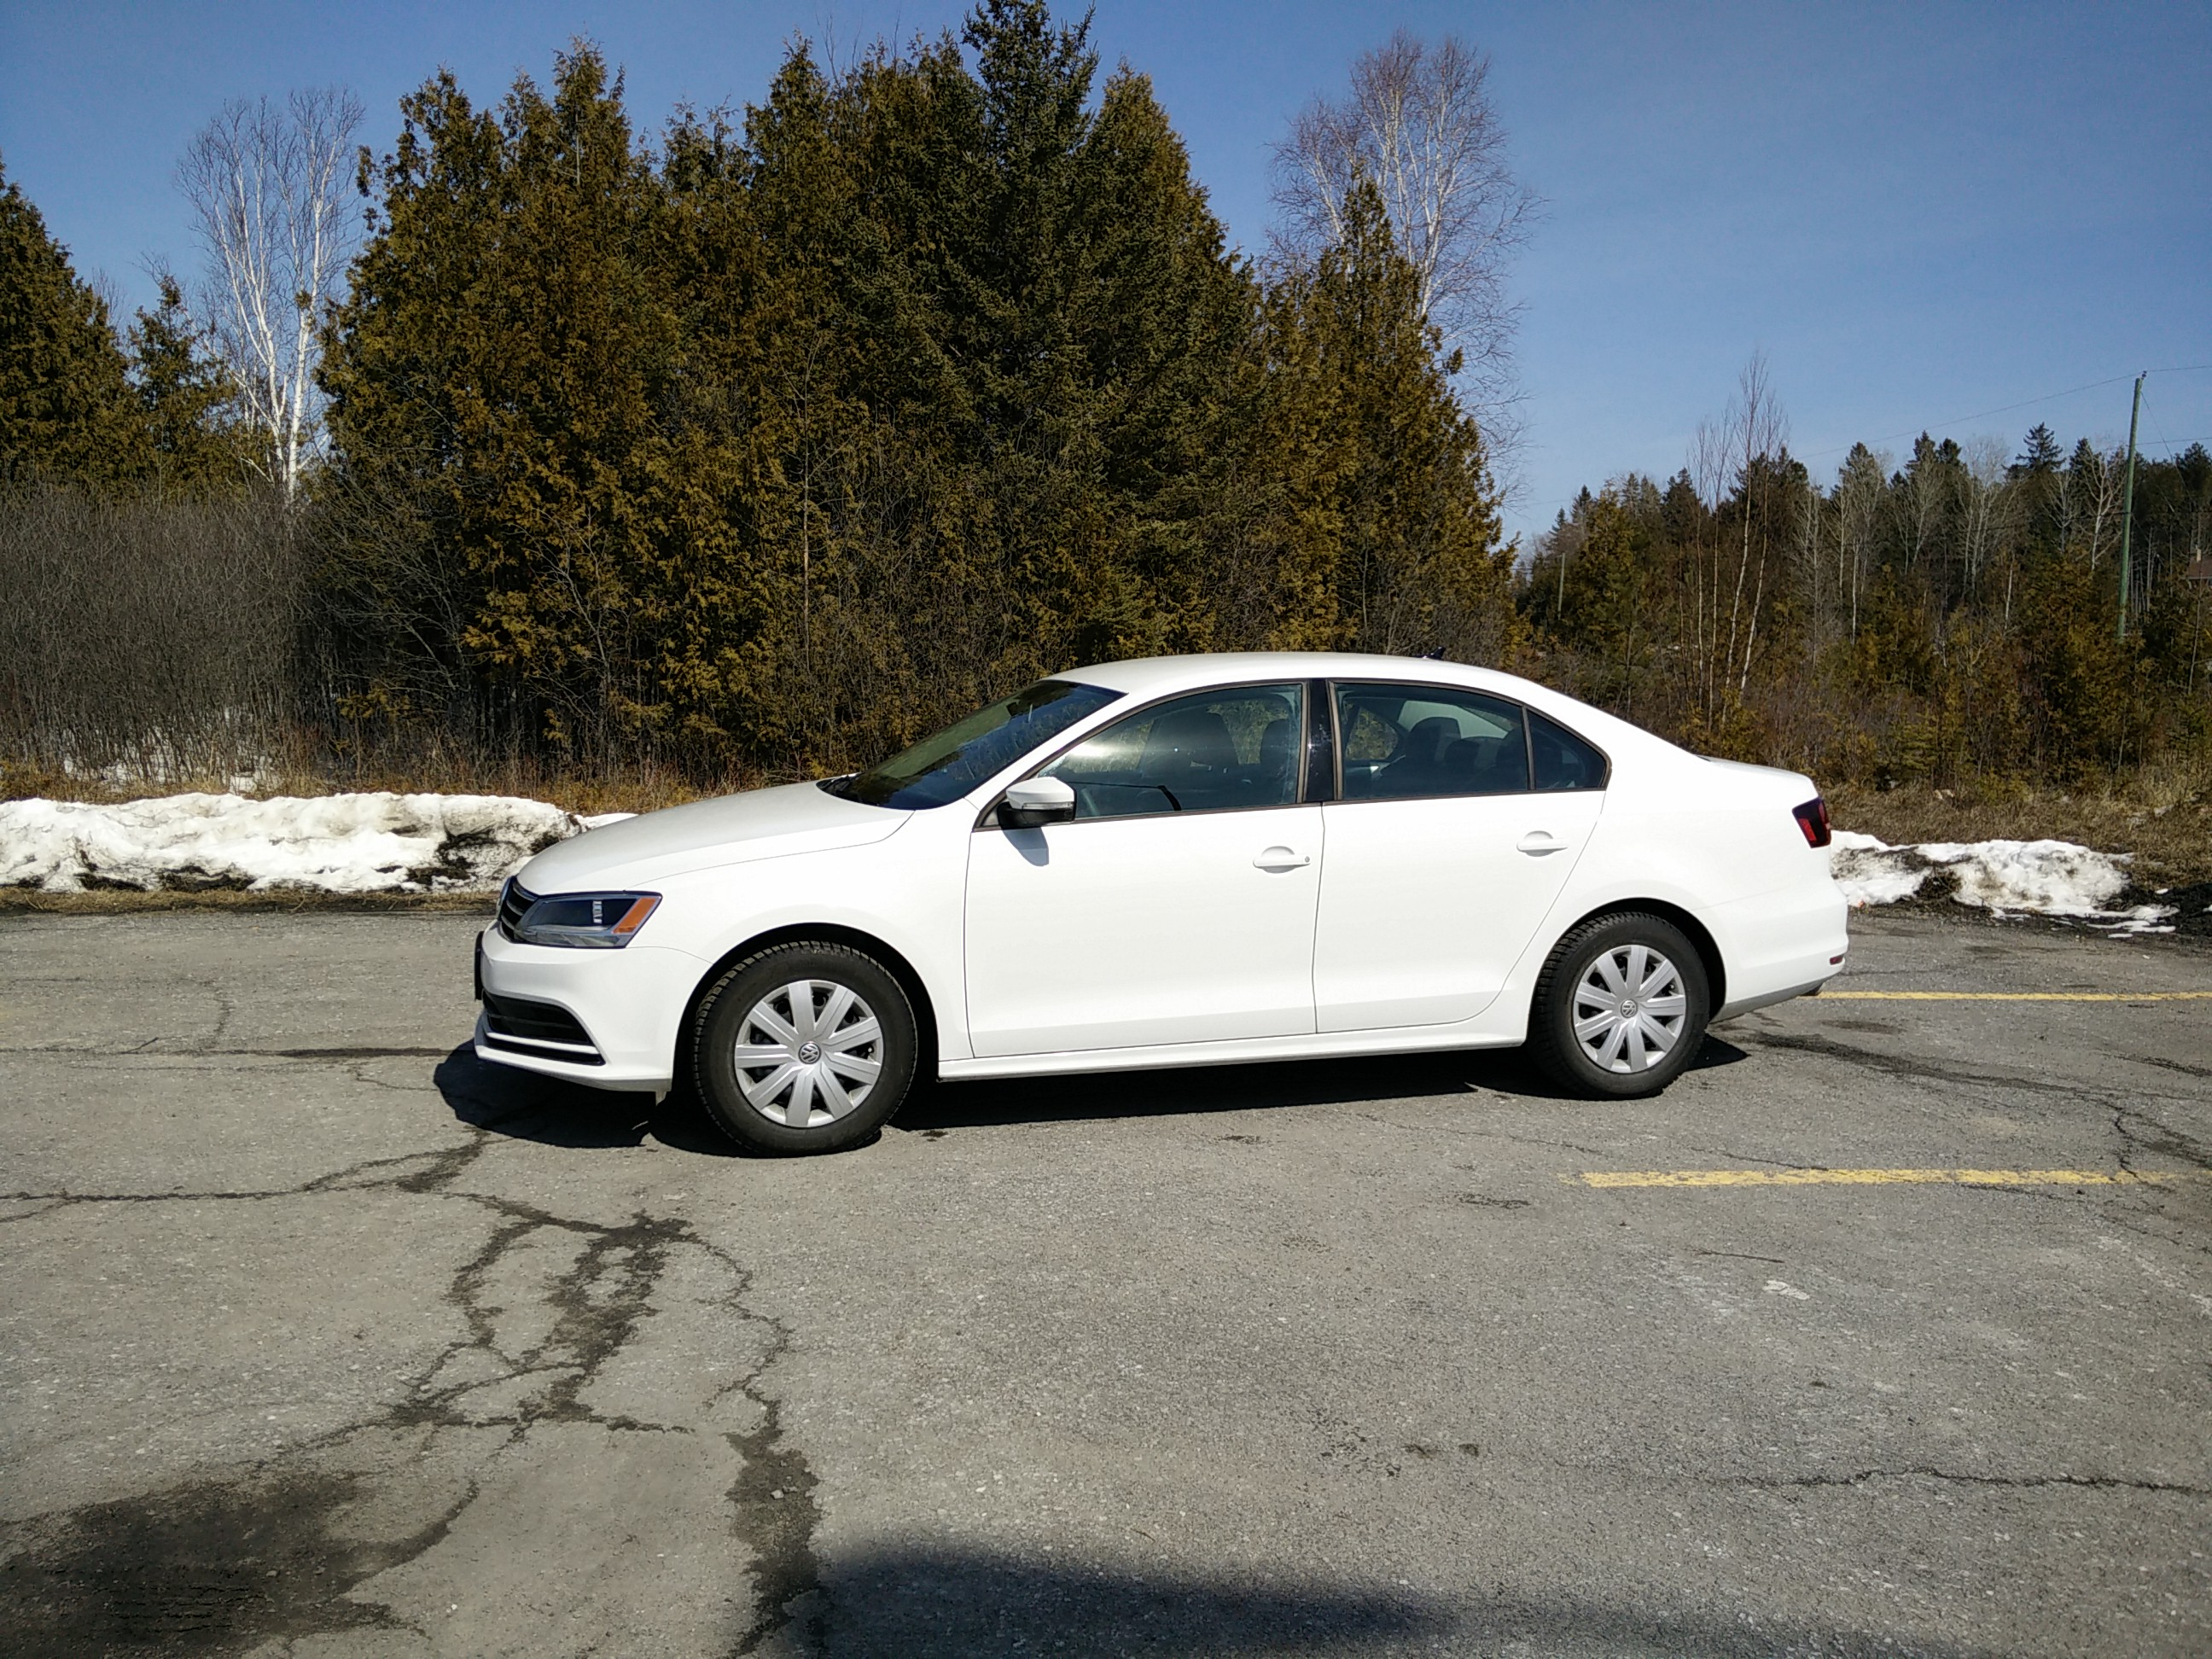 2016 Volkswagen Jetta 1.4TSI -- Changing my tune